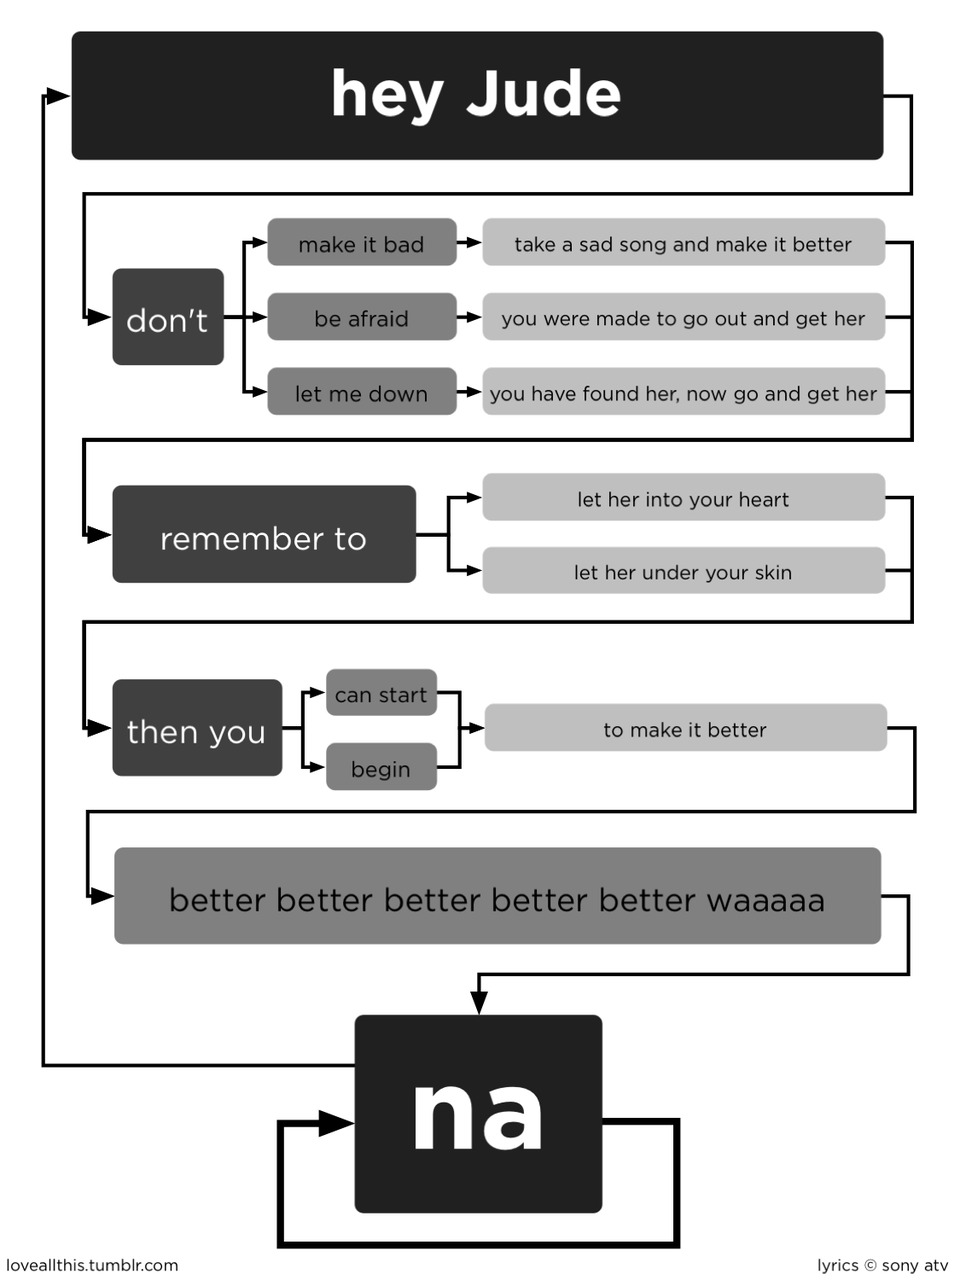 Hey jude flow diagram